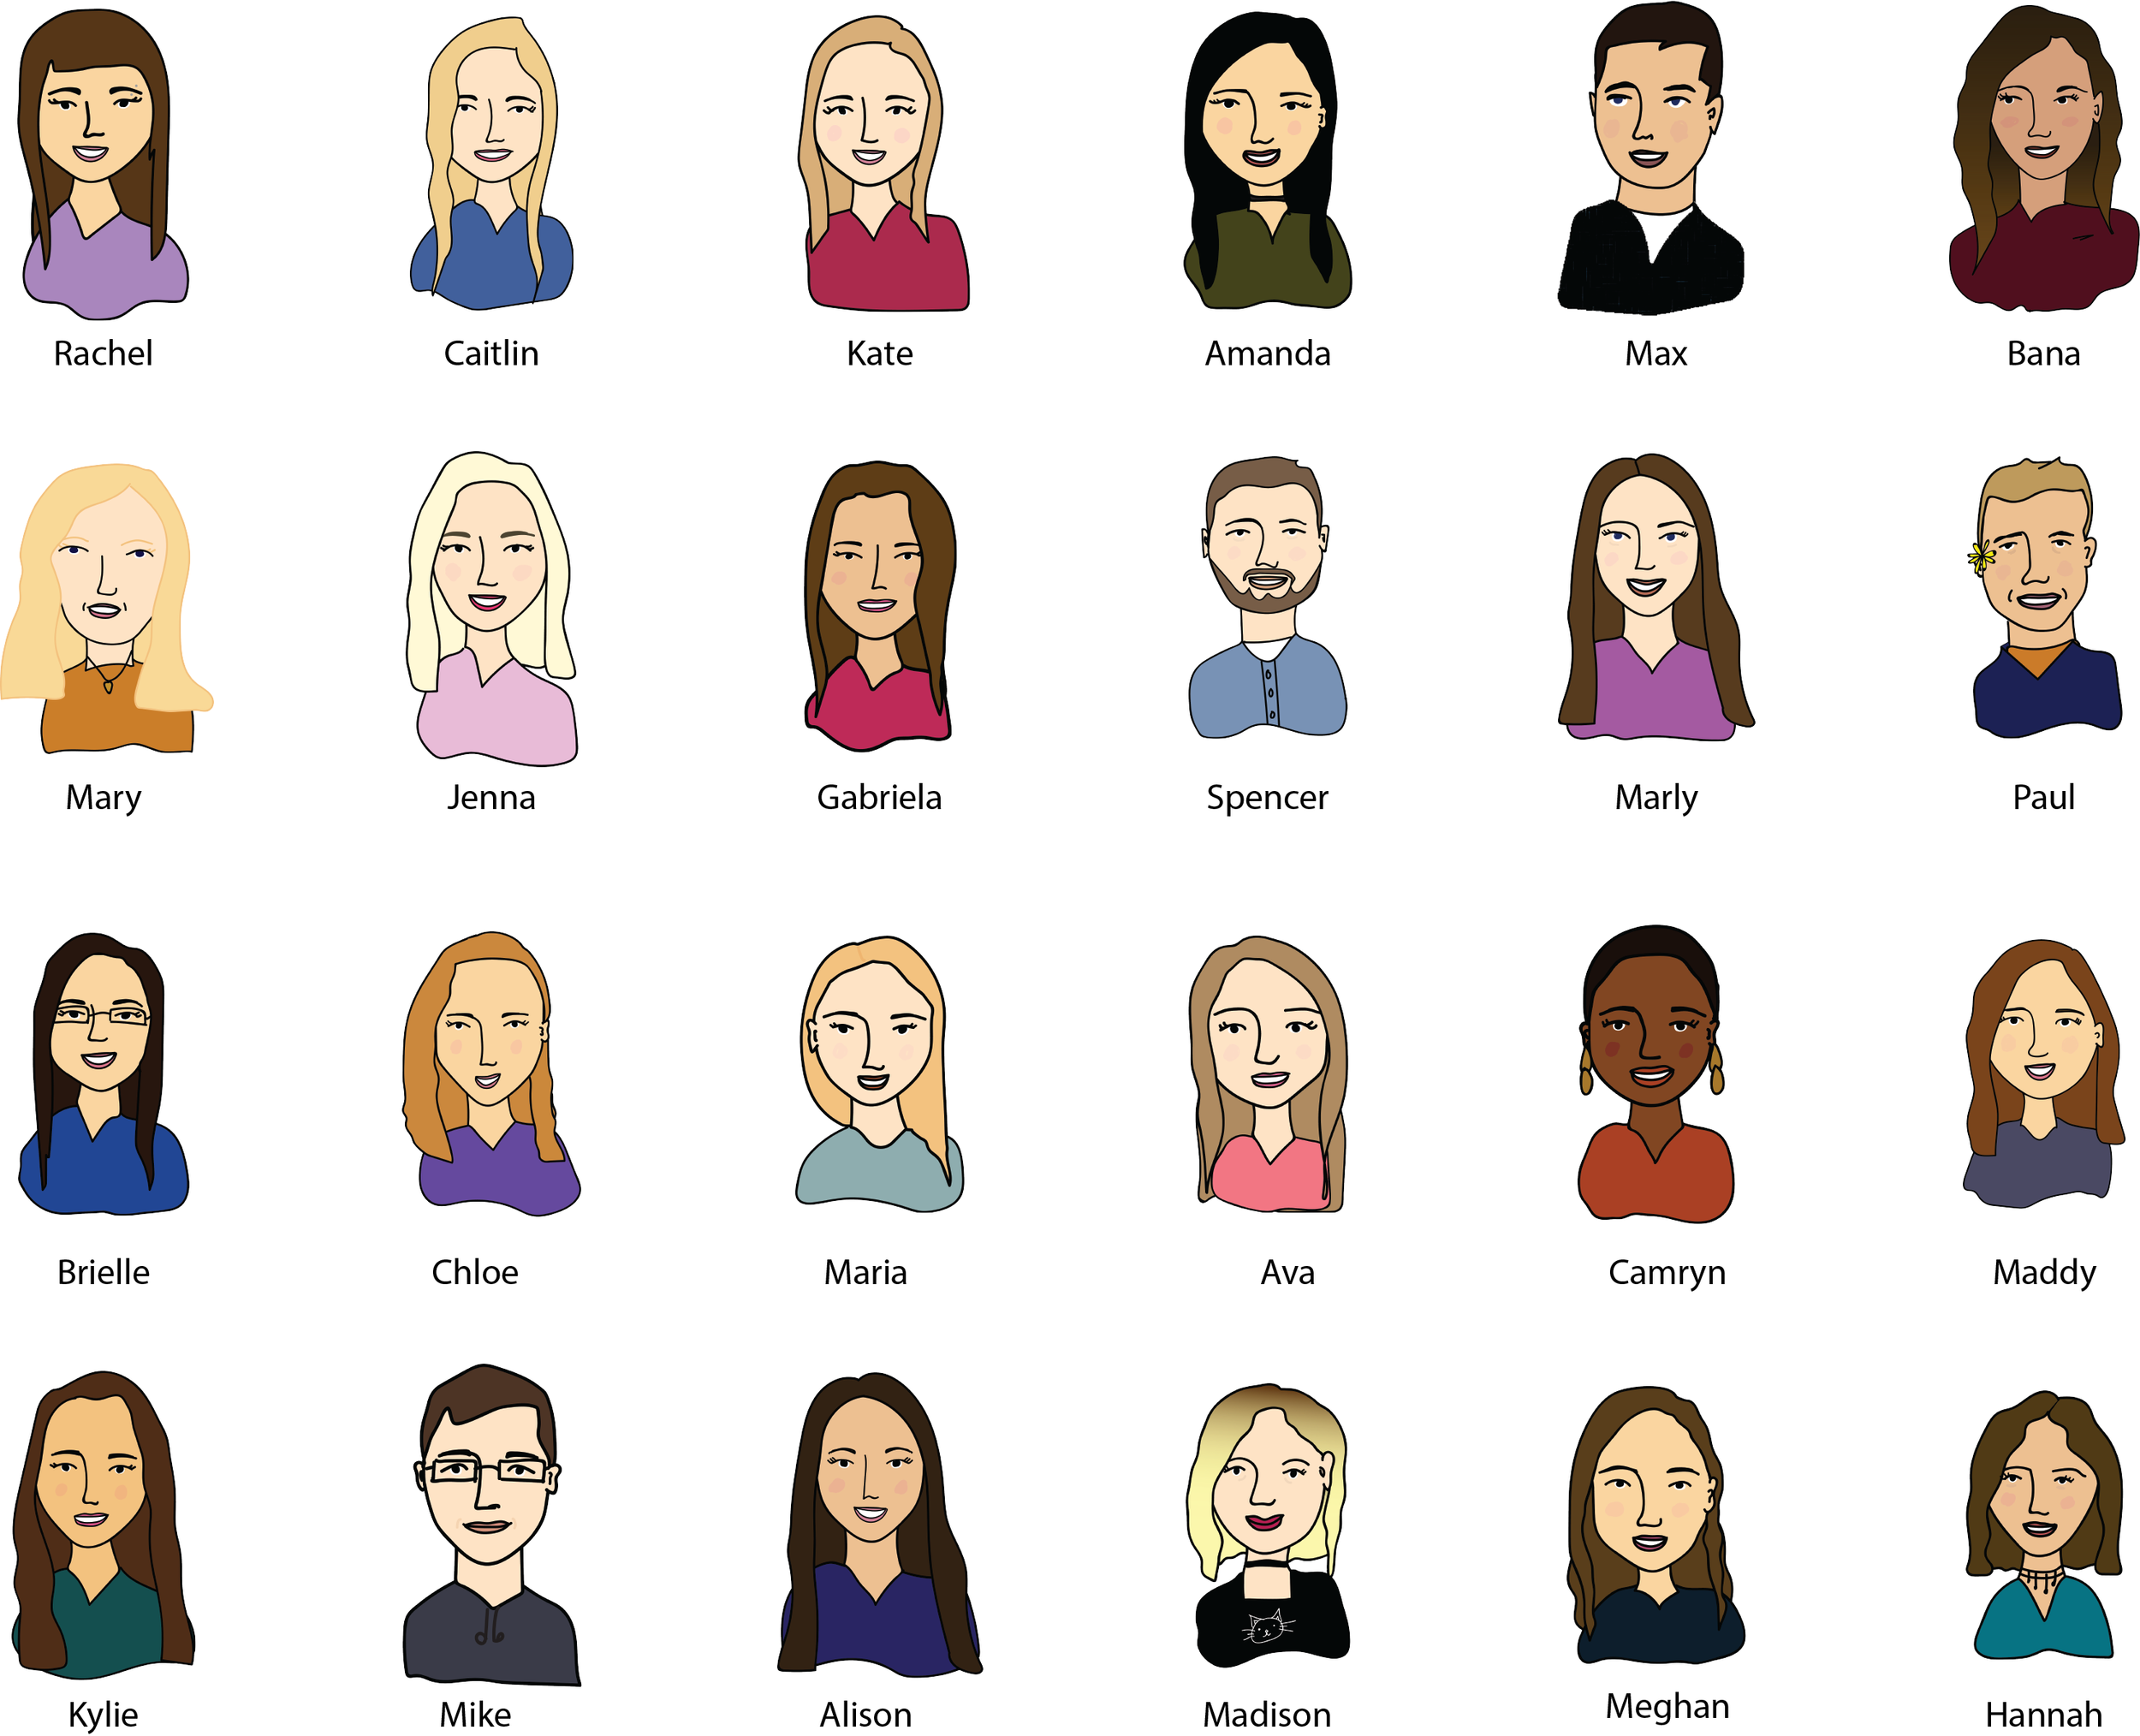 Drew up the 2019 intern & apprentice summer class with our mentors for an internal weekly newsletter! Here are all the interns. (Mentors not included)